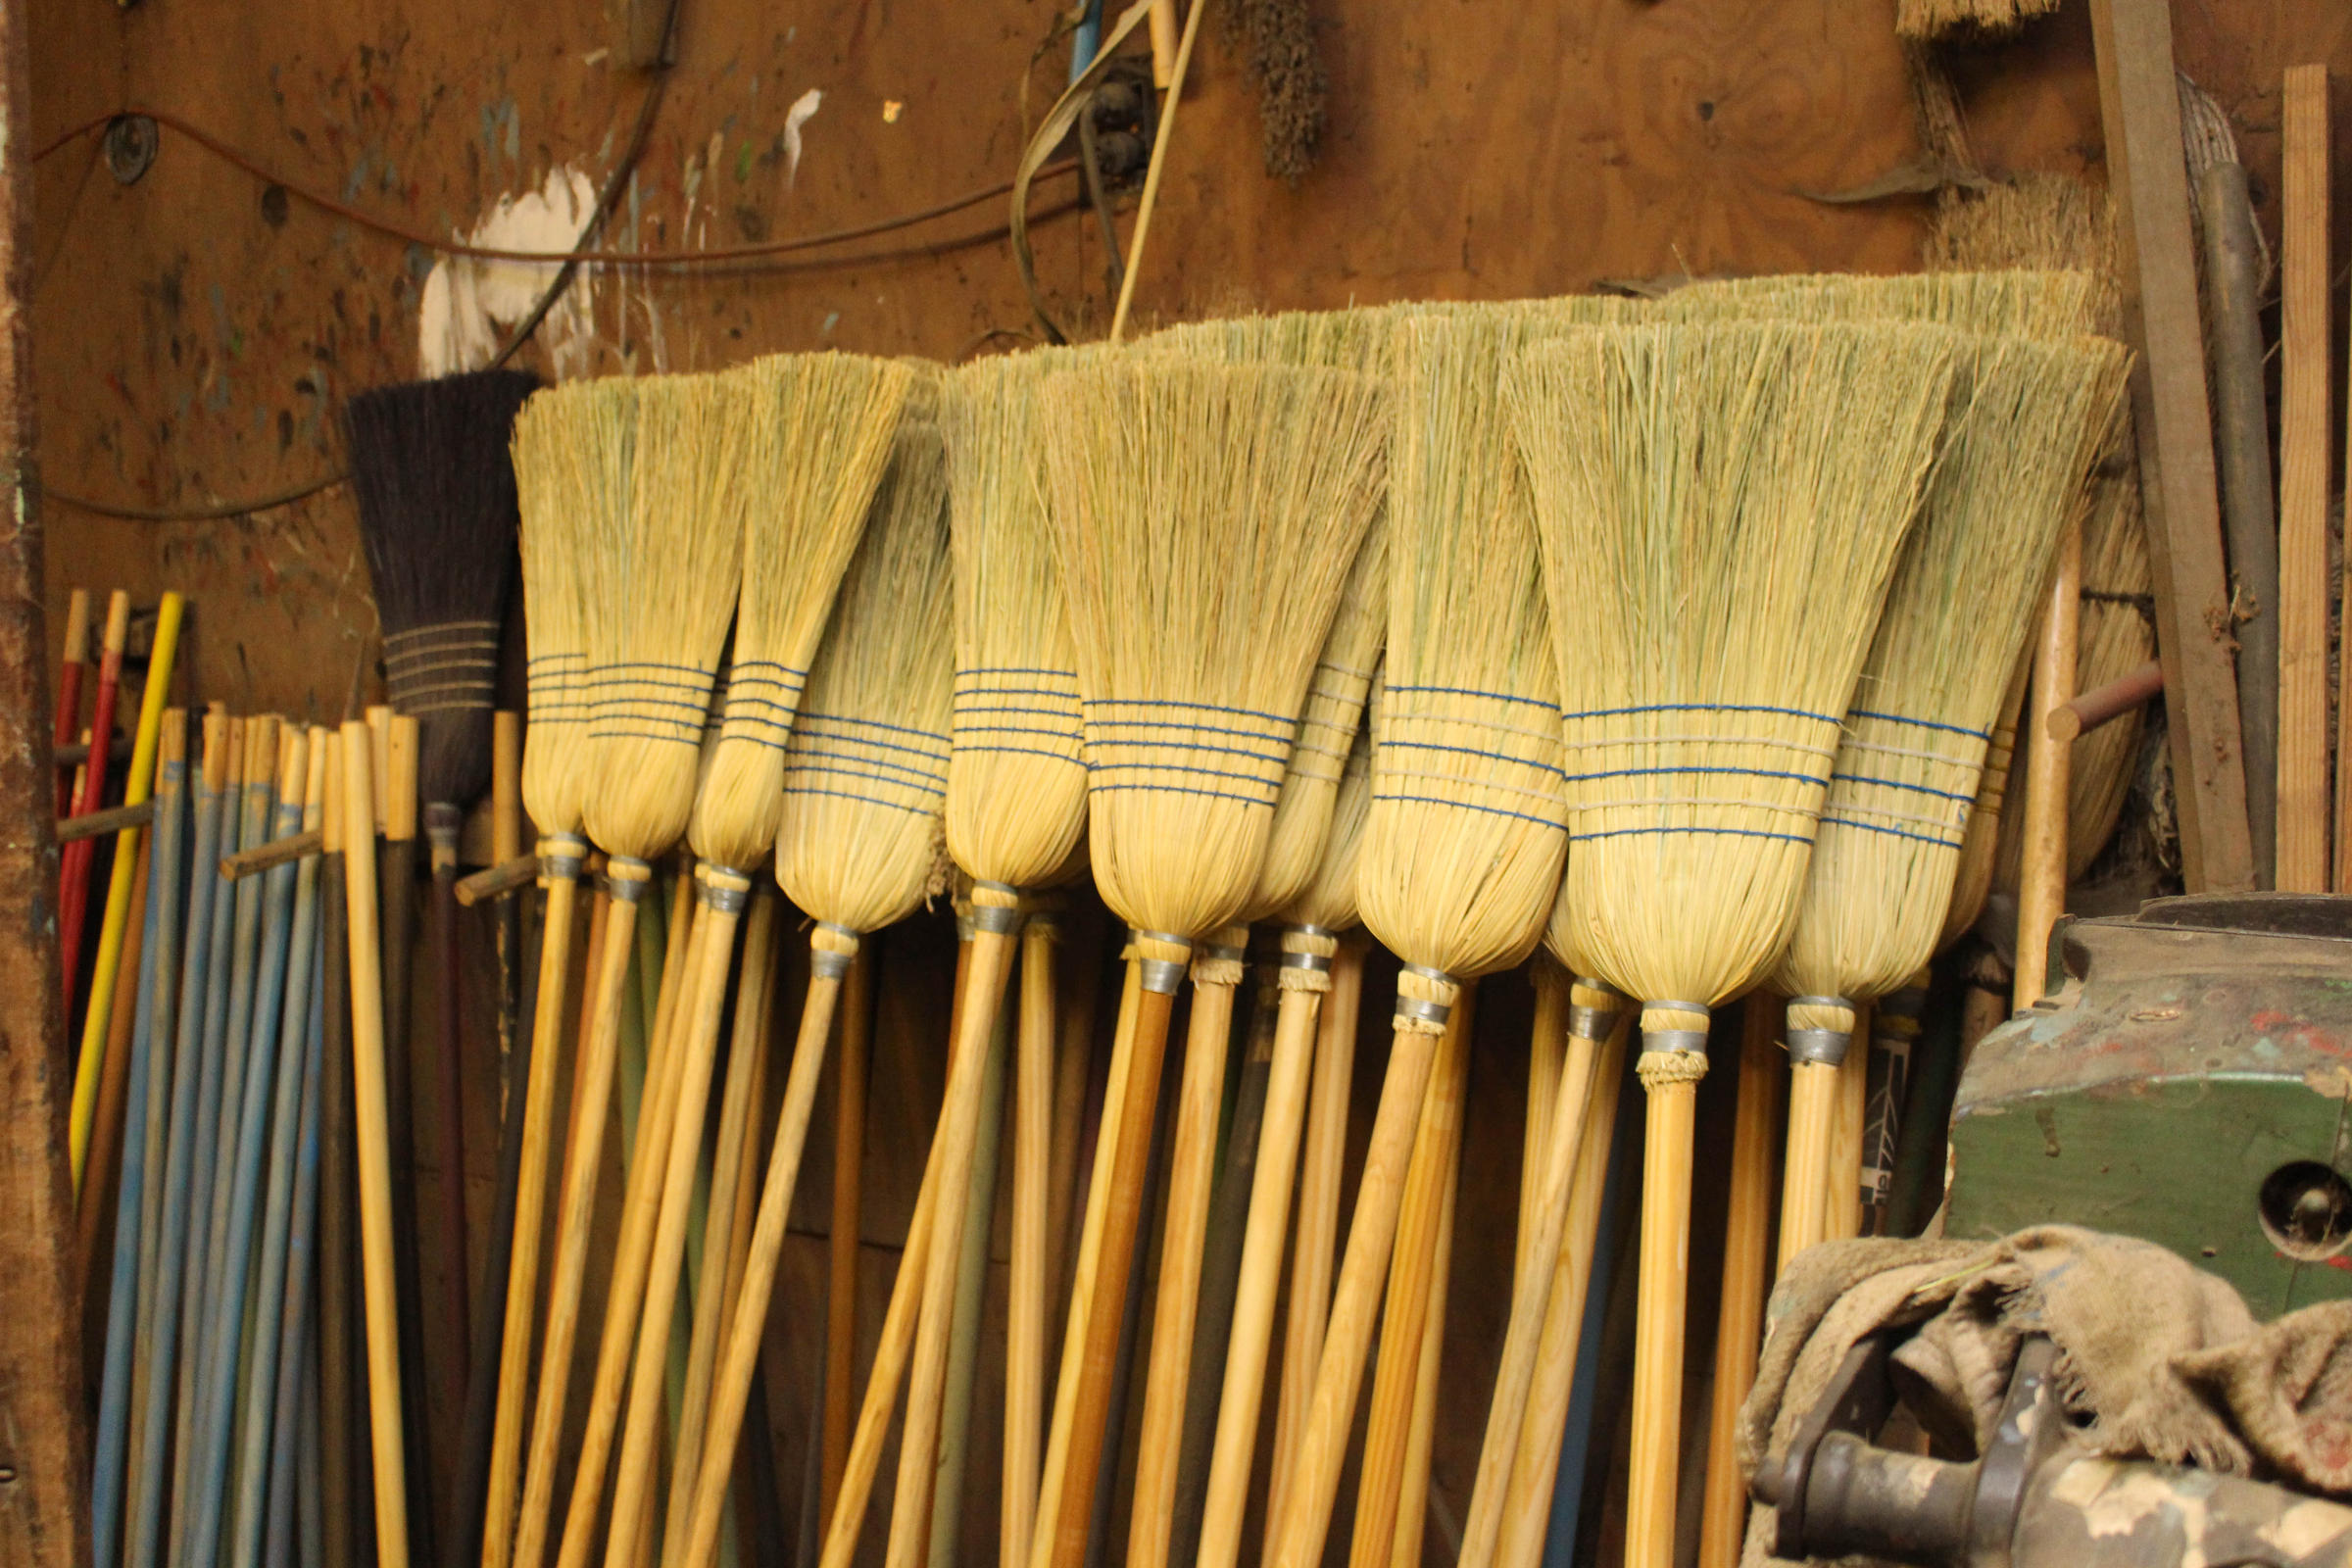 Meet One of the Last Remaining Broom Makers in Appalachia | West